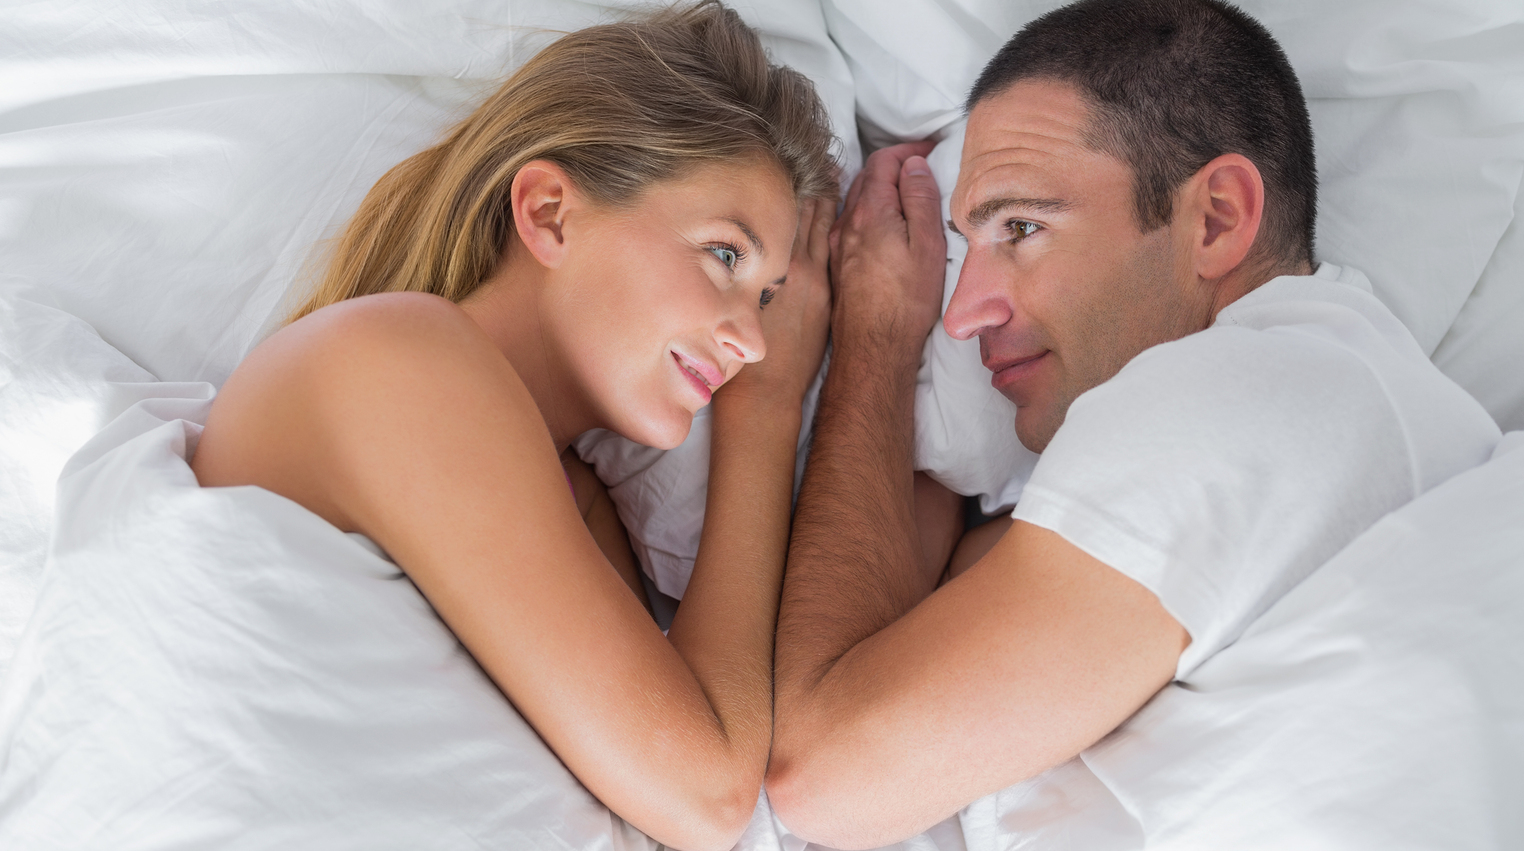 Cute couple lying and looking at each other in bed at home in bedroom